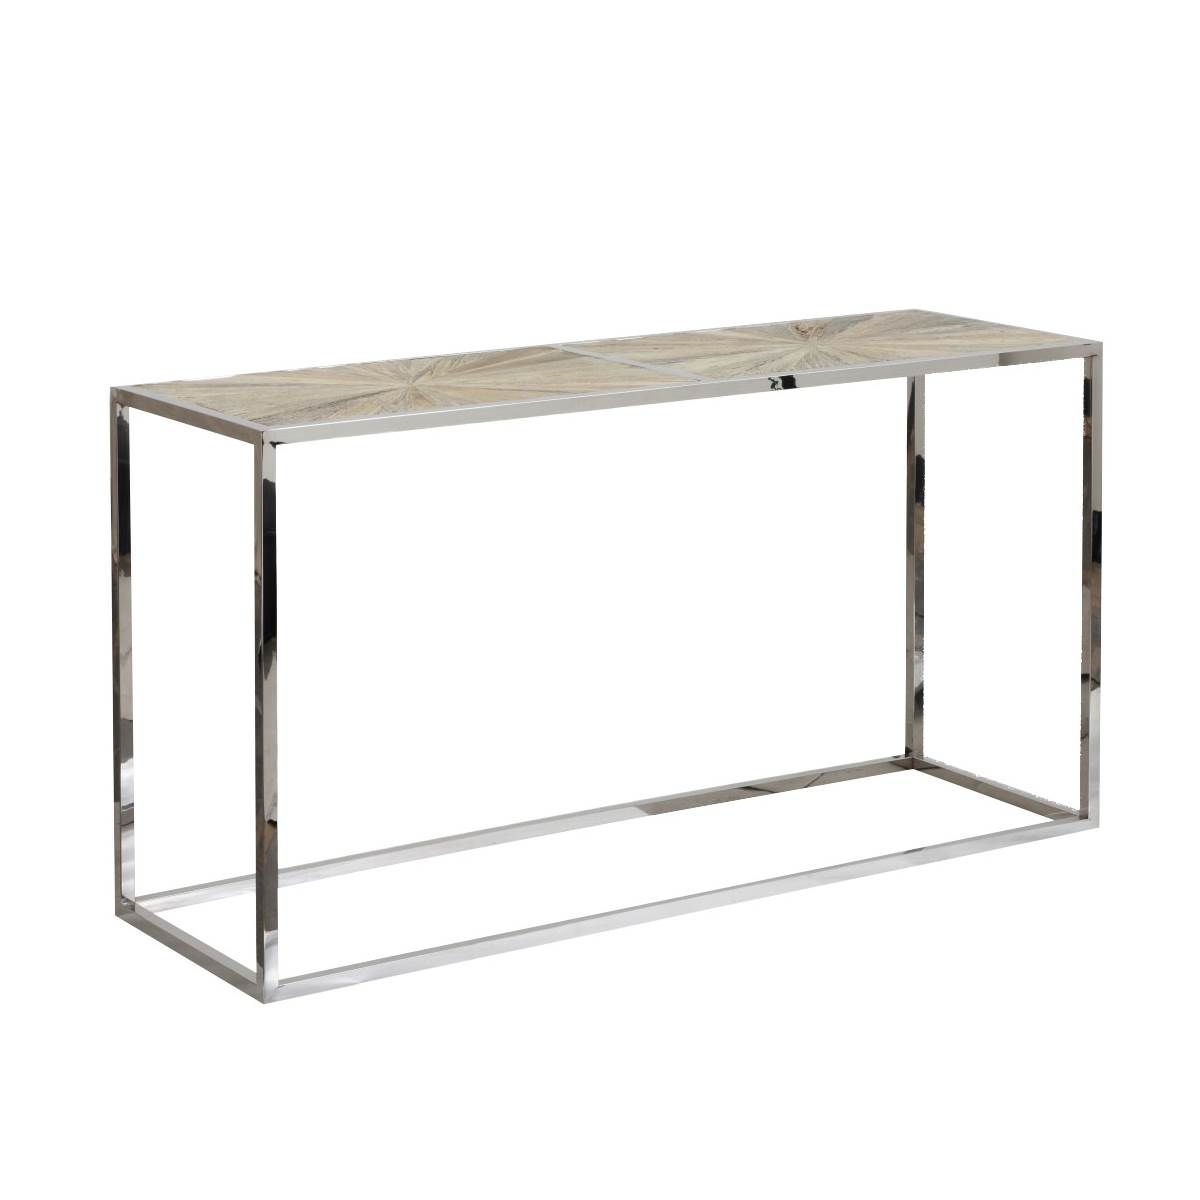 Parquet Console Table | Marshall | Pinterest Throughout Parsons Grey Marble Top & Dark Steel Base 48x16 Console Tables (View 8 of 30)